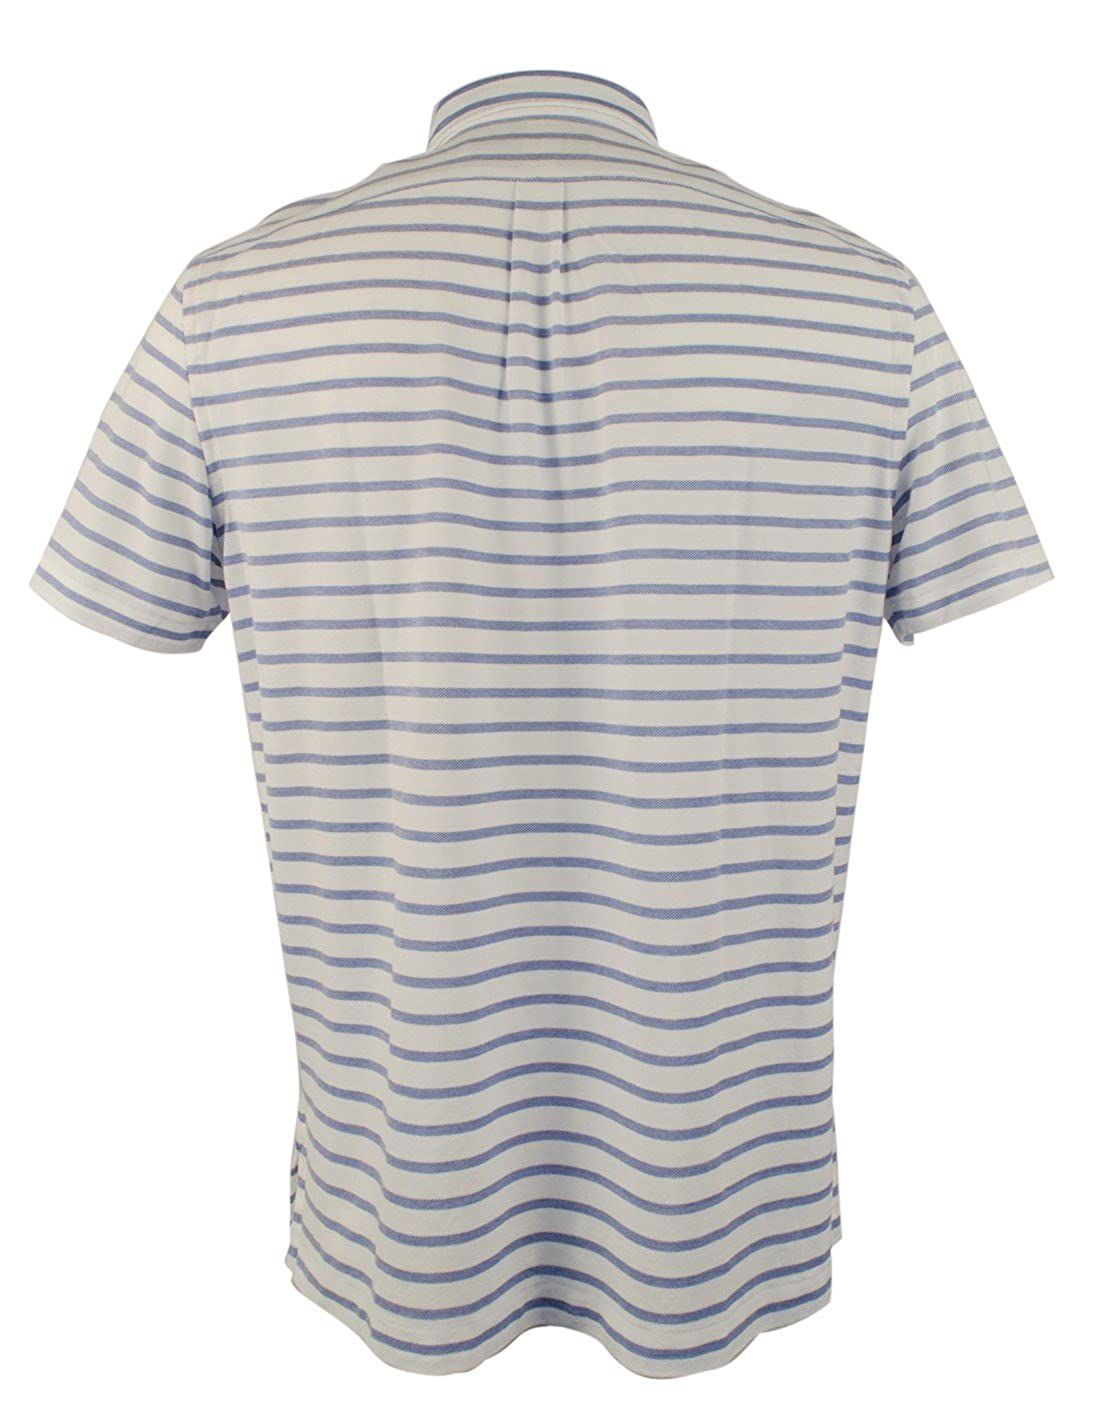 82264a96 Polo Ralph Lauren Men's Striped Hampton Knit Oxford Short Sleeve Polo Shirt  at Amazon Men's Clothing store: